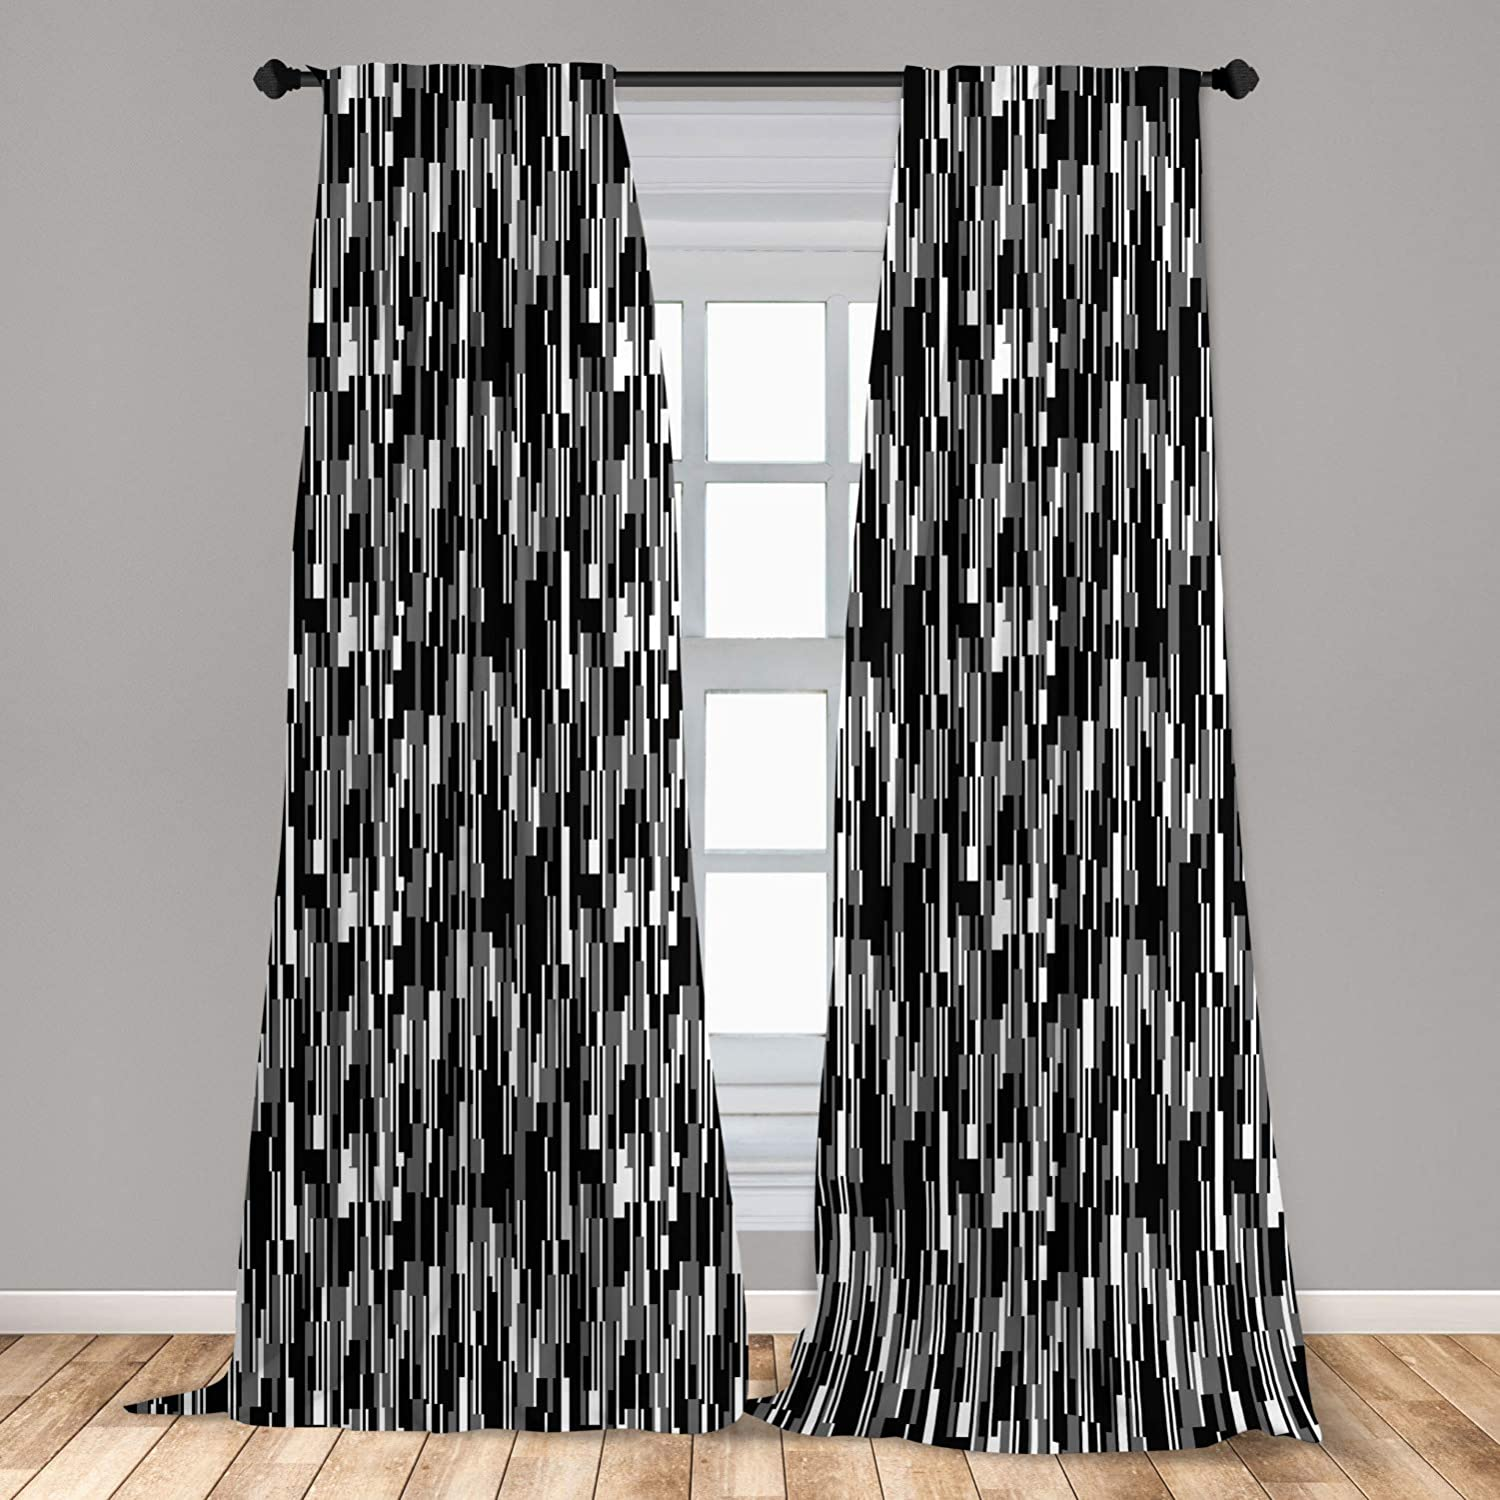 """Ambesonne Black and White 2 Panel Curtain Set, Barcode Pattern Abstraction Vertical Stripes in Grayscale Colors, Lightweight Window Treatment Living Room Bedroom Decor, 56"""" x 84"""", Black Grey"""